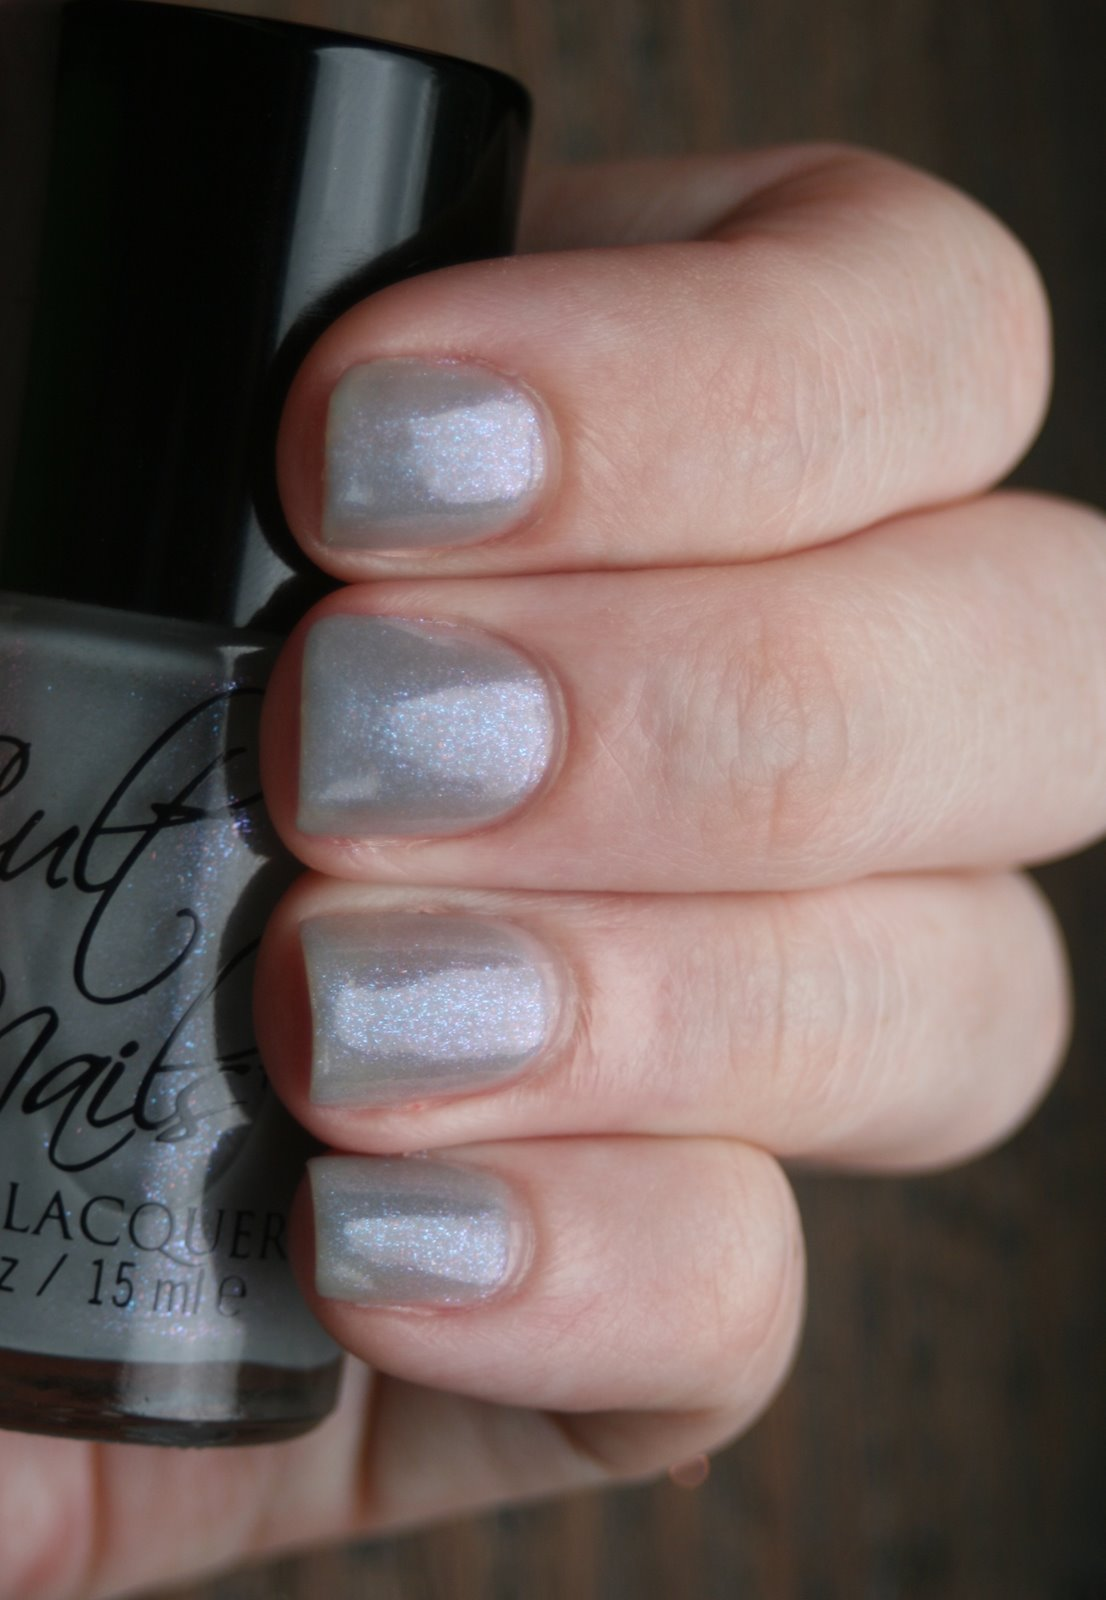 Cult Nails Disciplined swatch